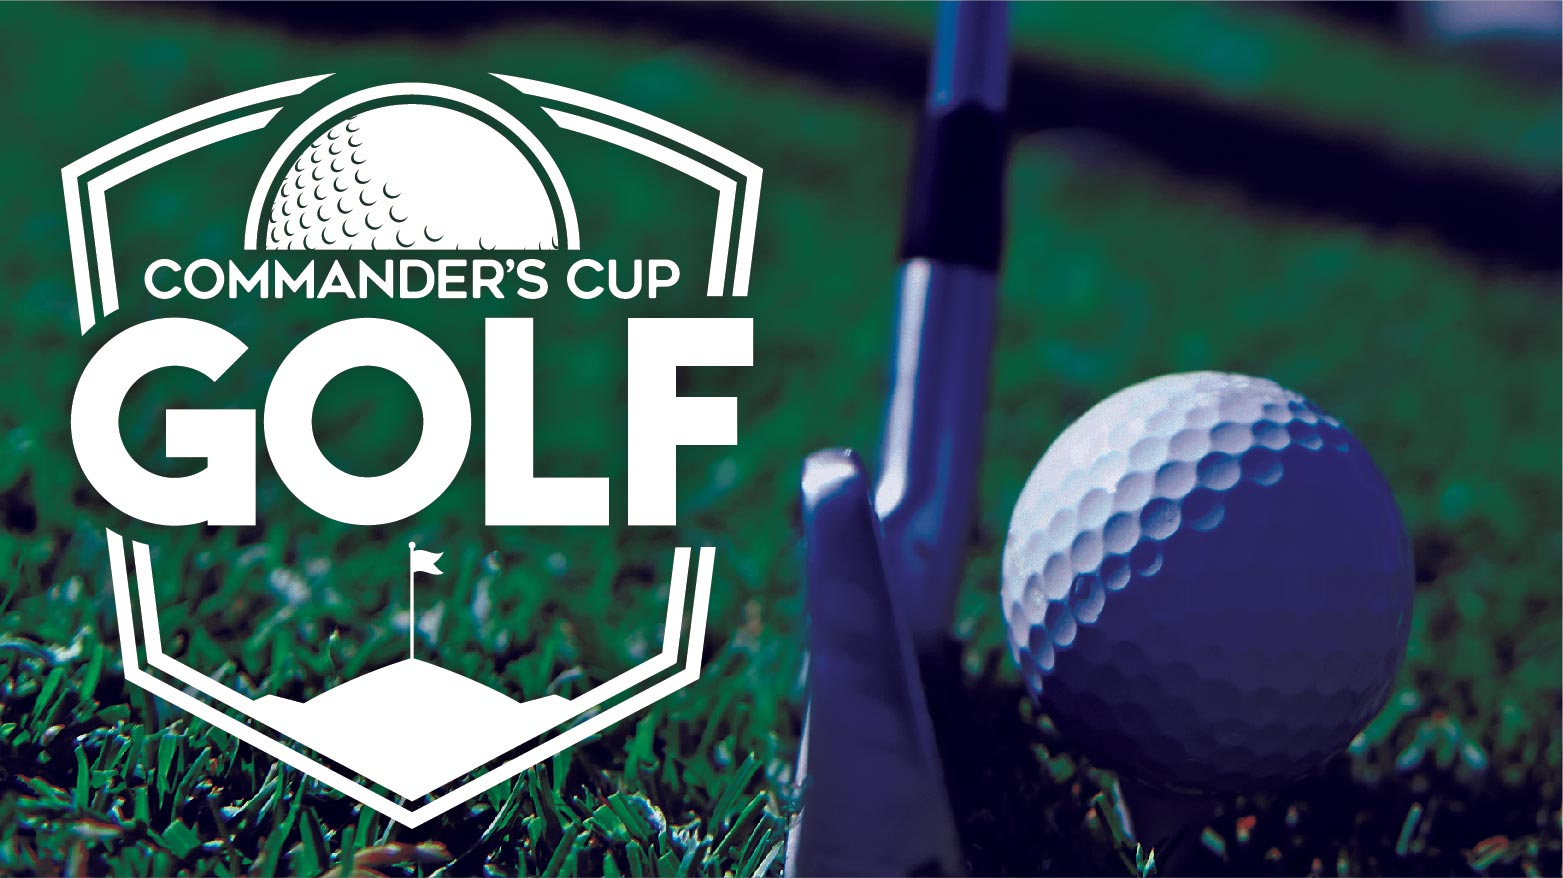 Commanders Cup Golf League